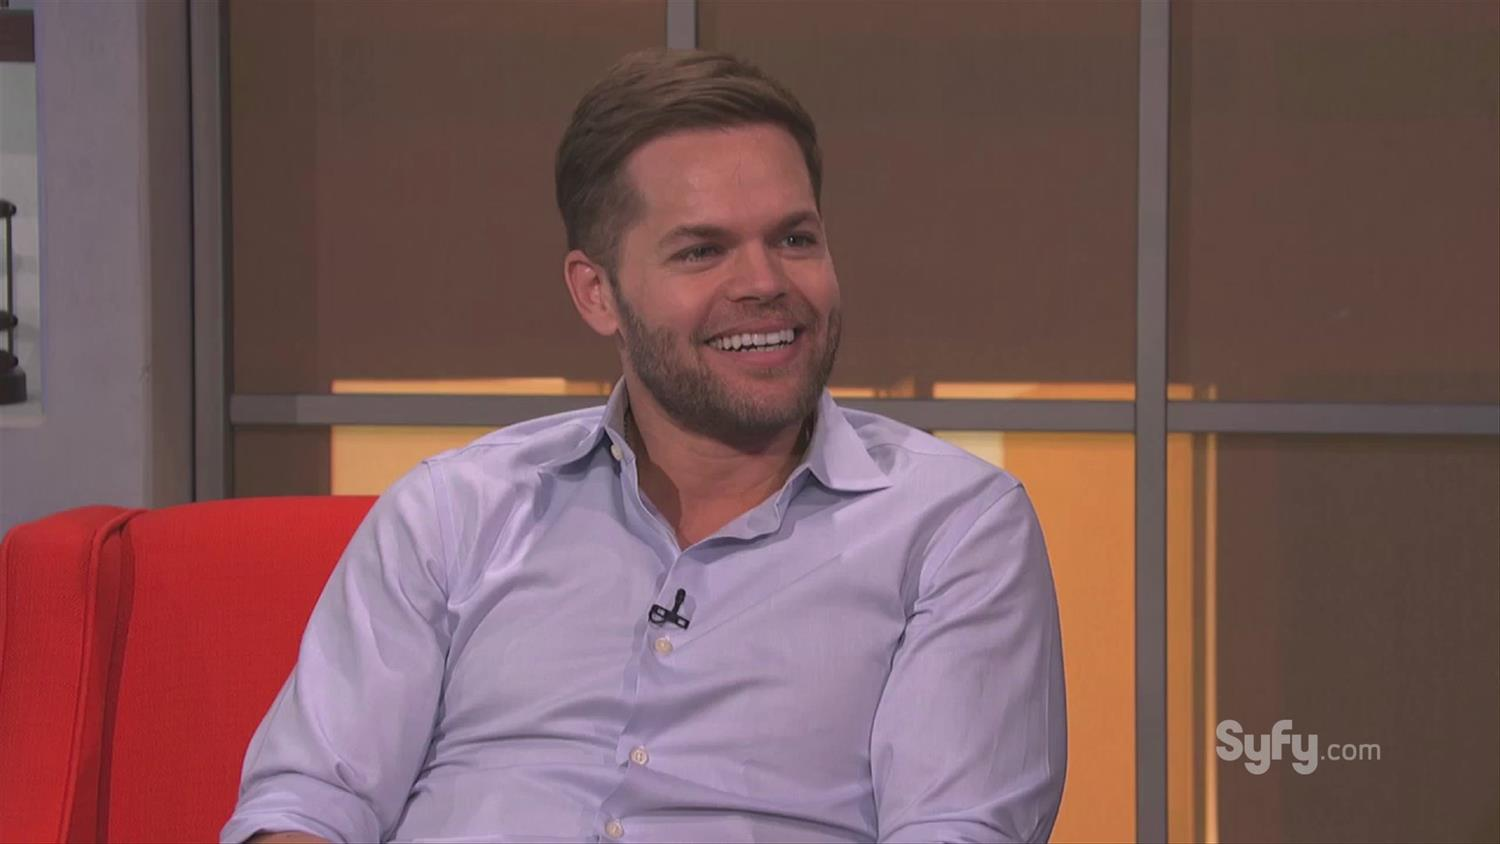 Bonus Interview: More Wes Chatham